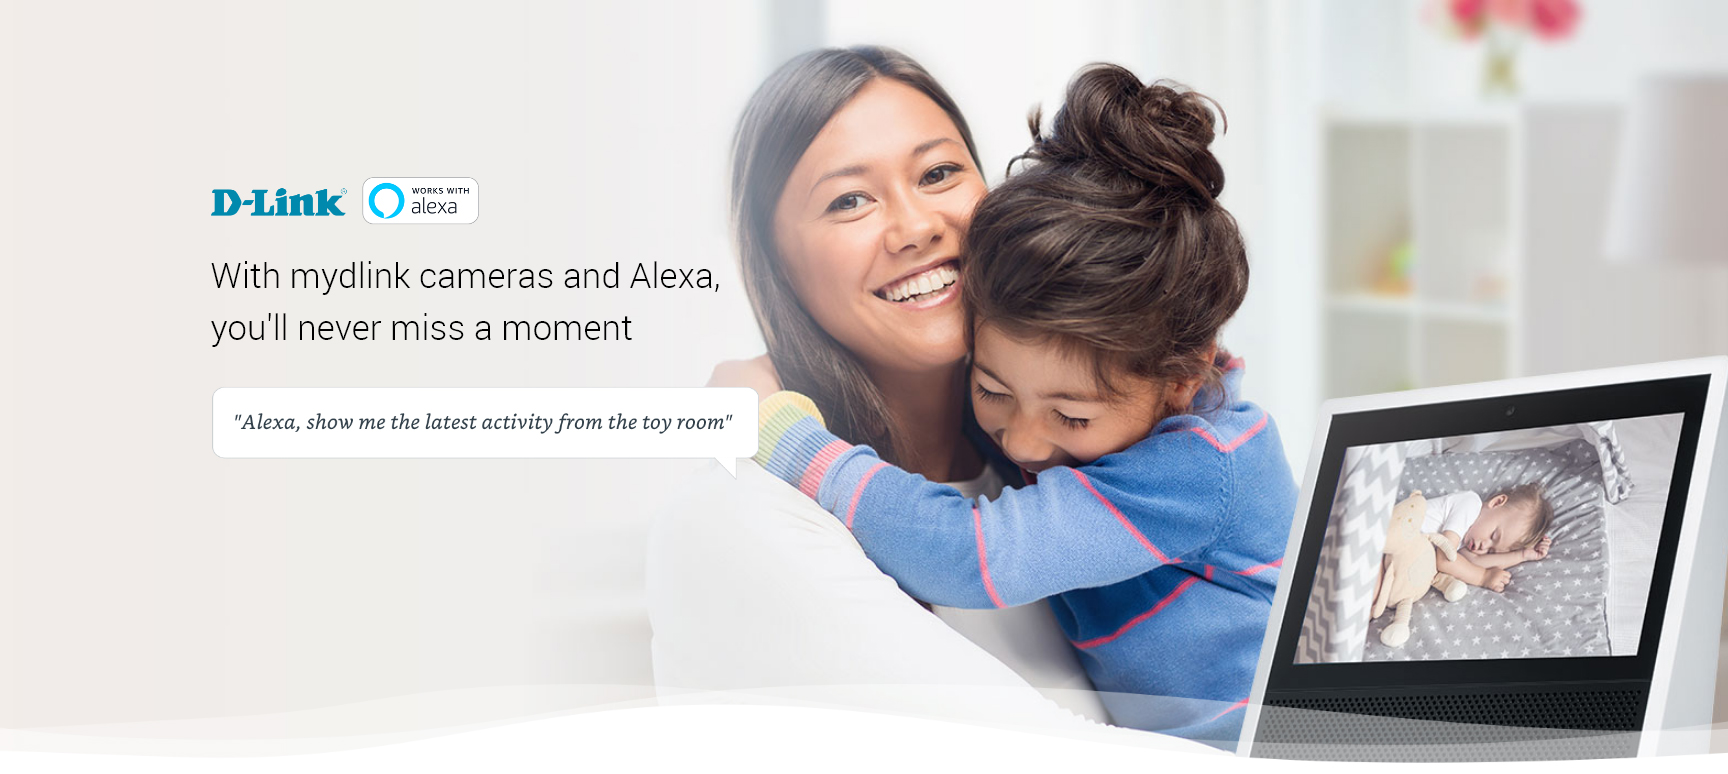 With mydlink cameras and Alexa, you'll never miss a moment